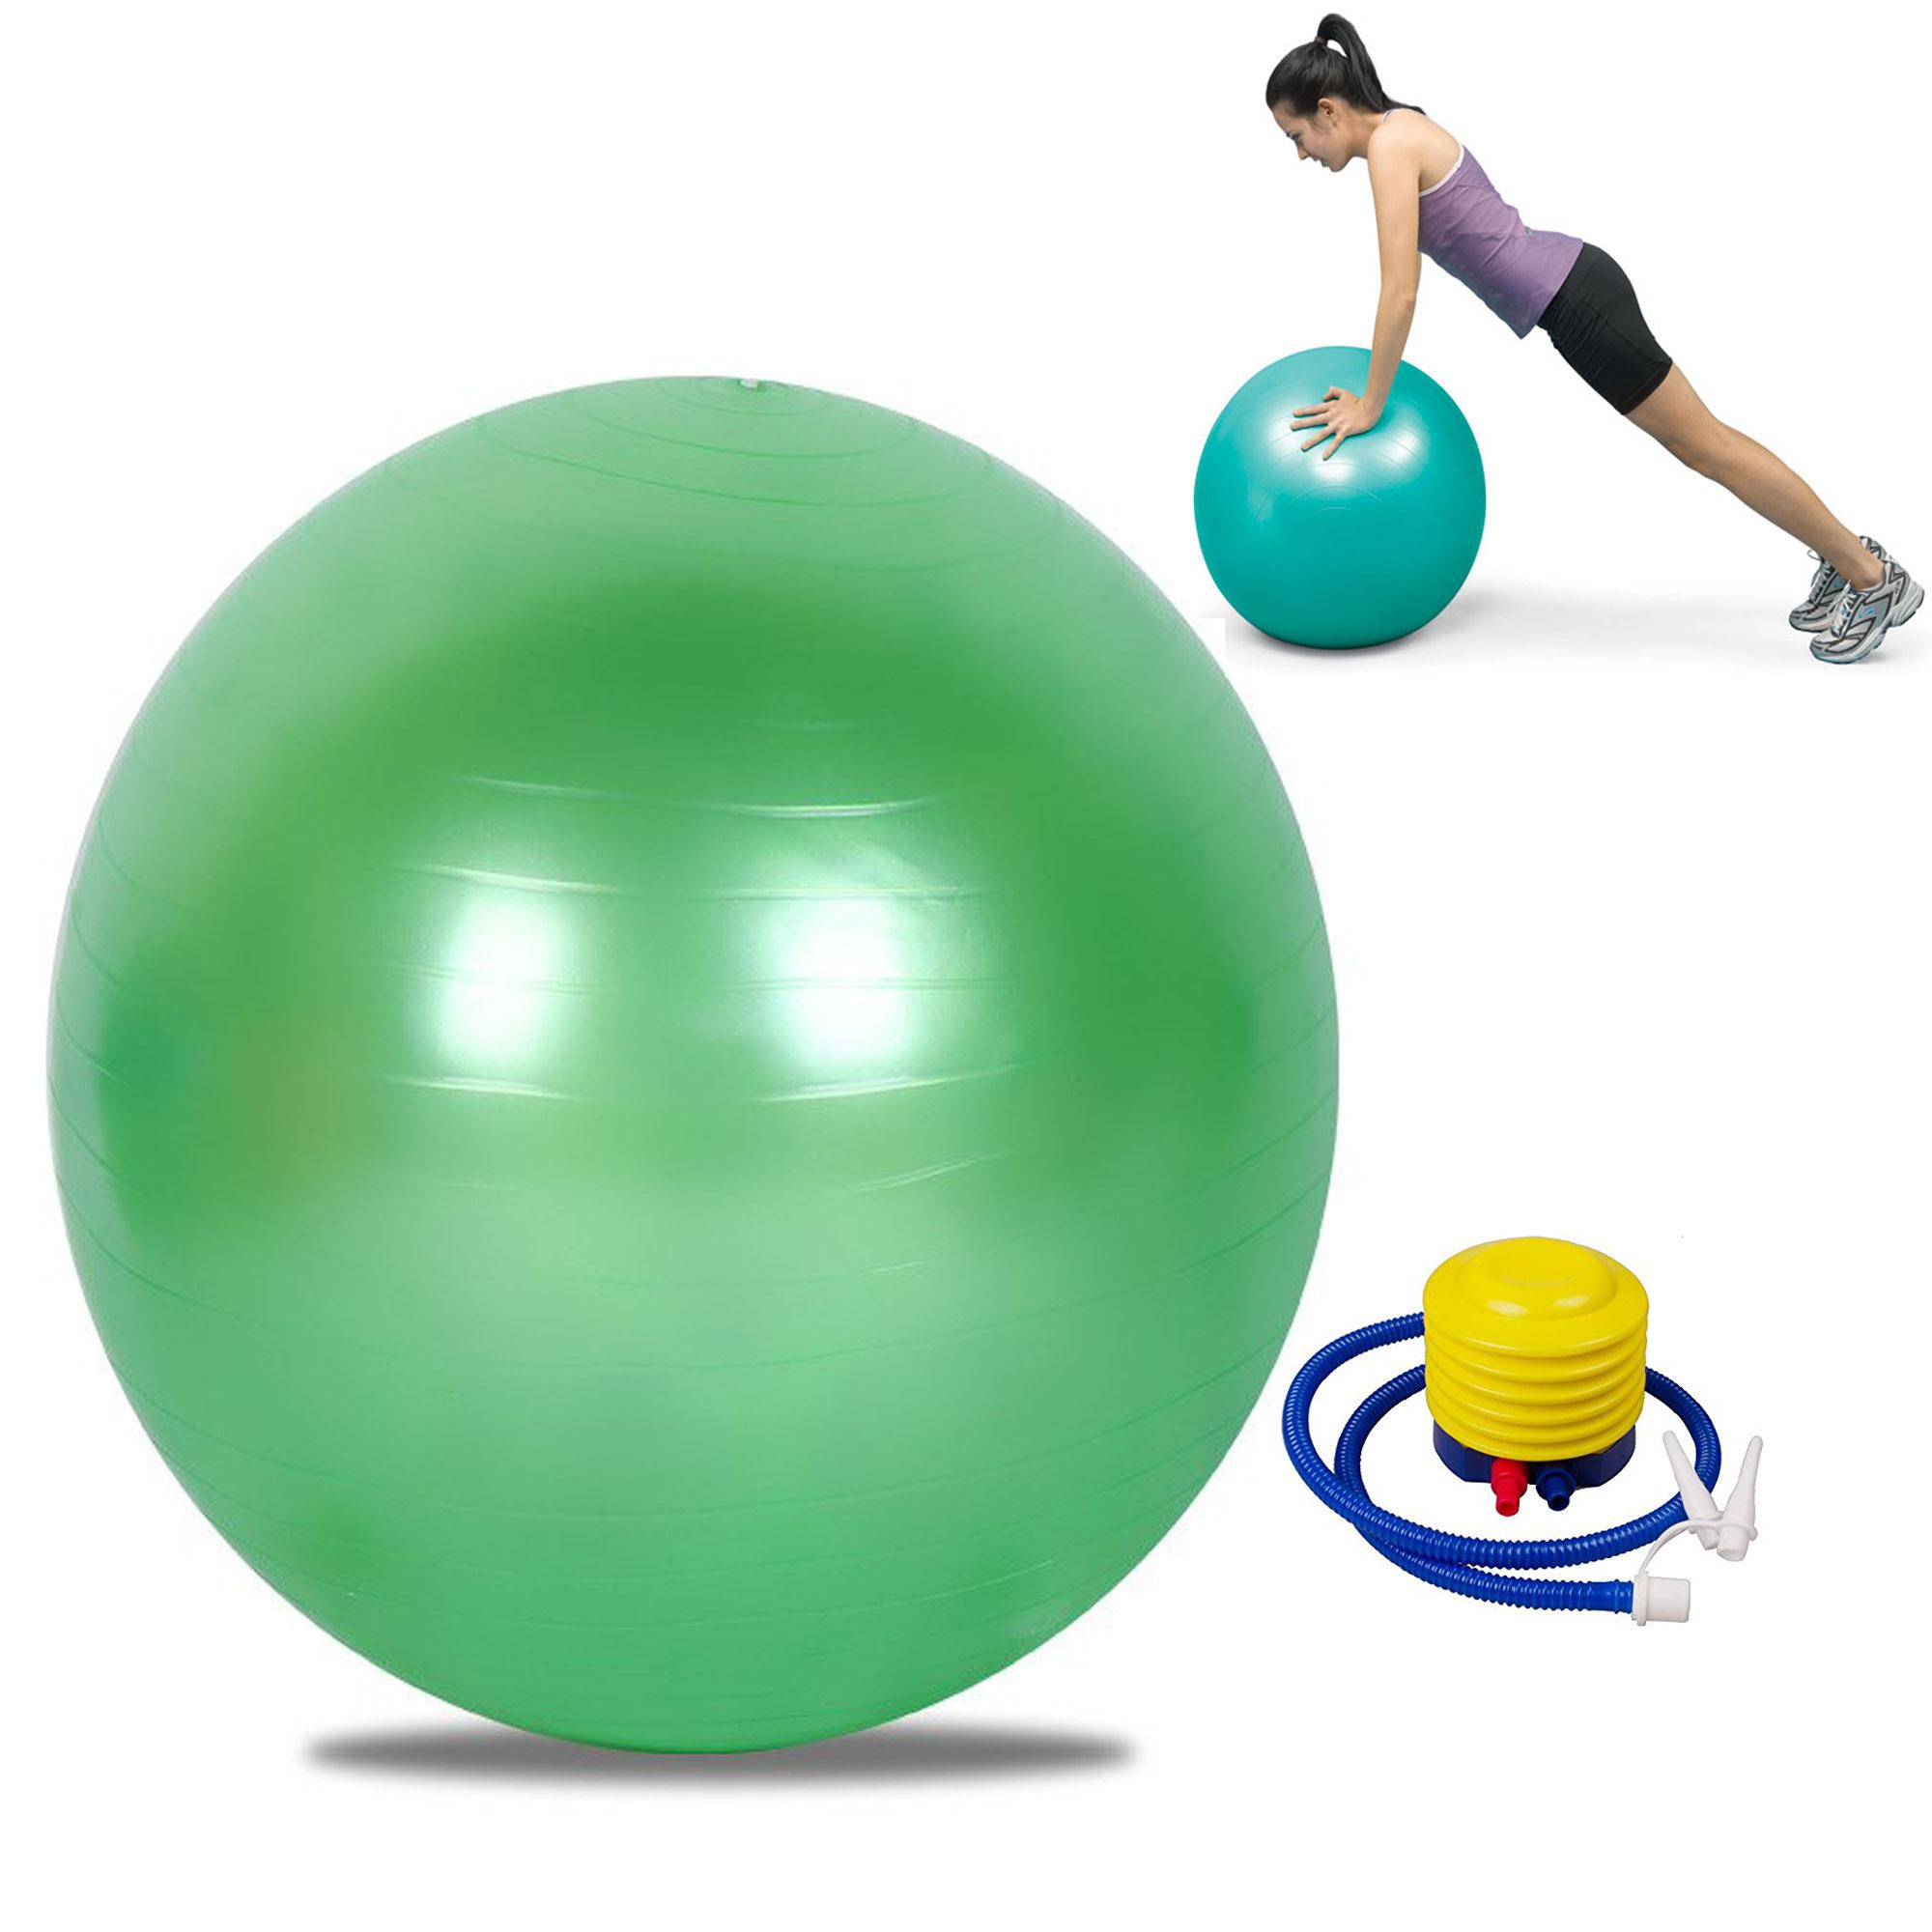 Gym Ball (green) By Gonzalez General Merchandise.